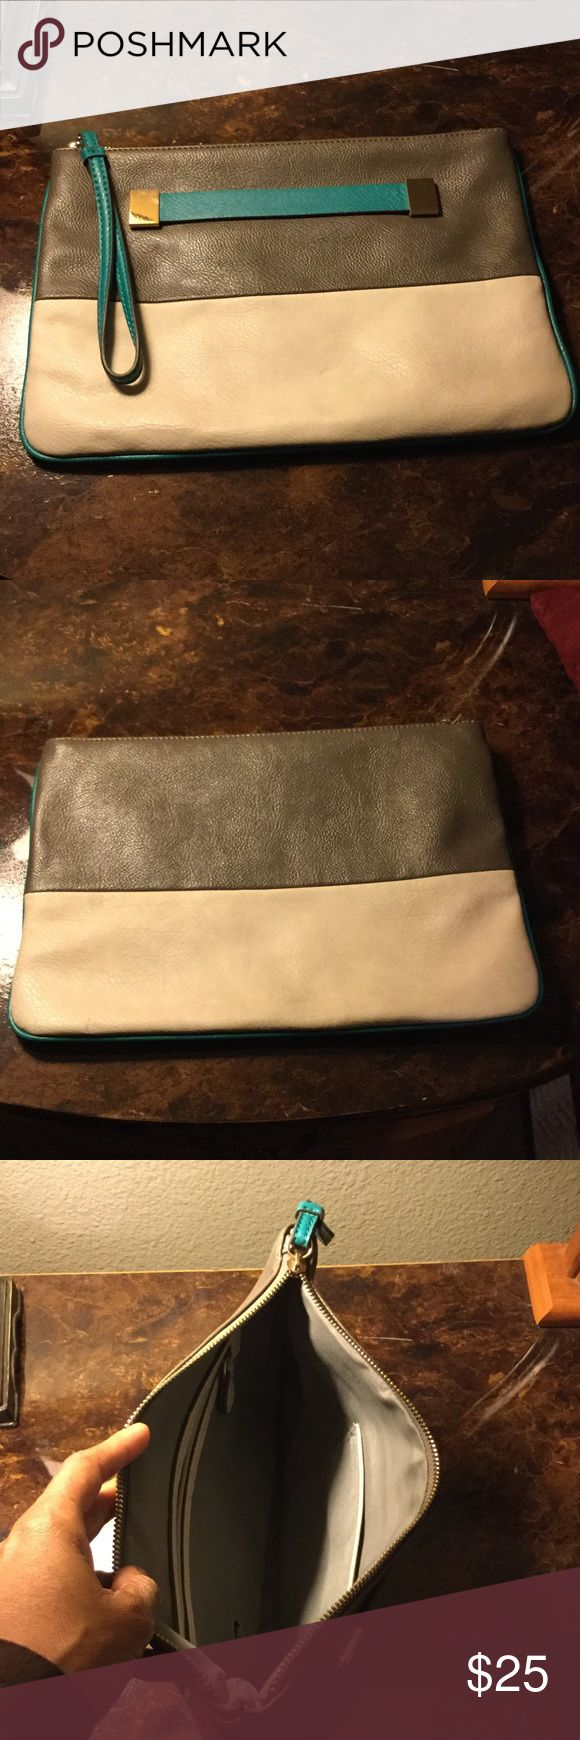 Purse Teal, grey and cream clutch purses 👛 with goals hard ware.  NWOT Bags Clutches & Wristlets